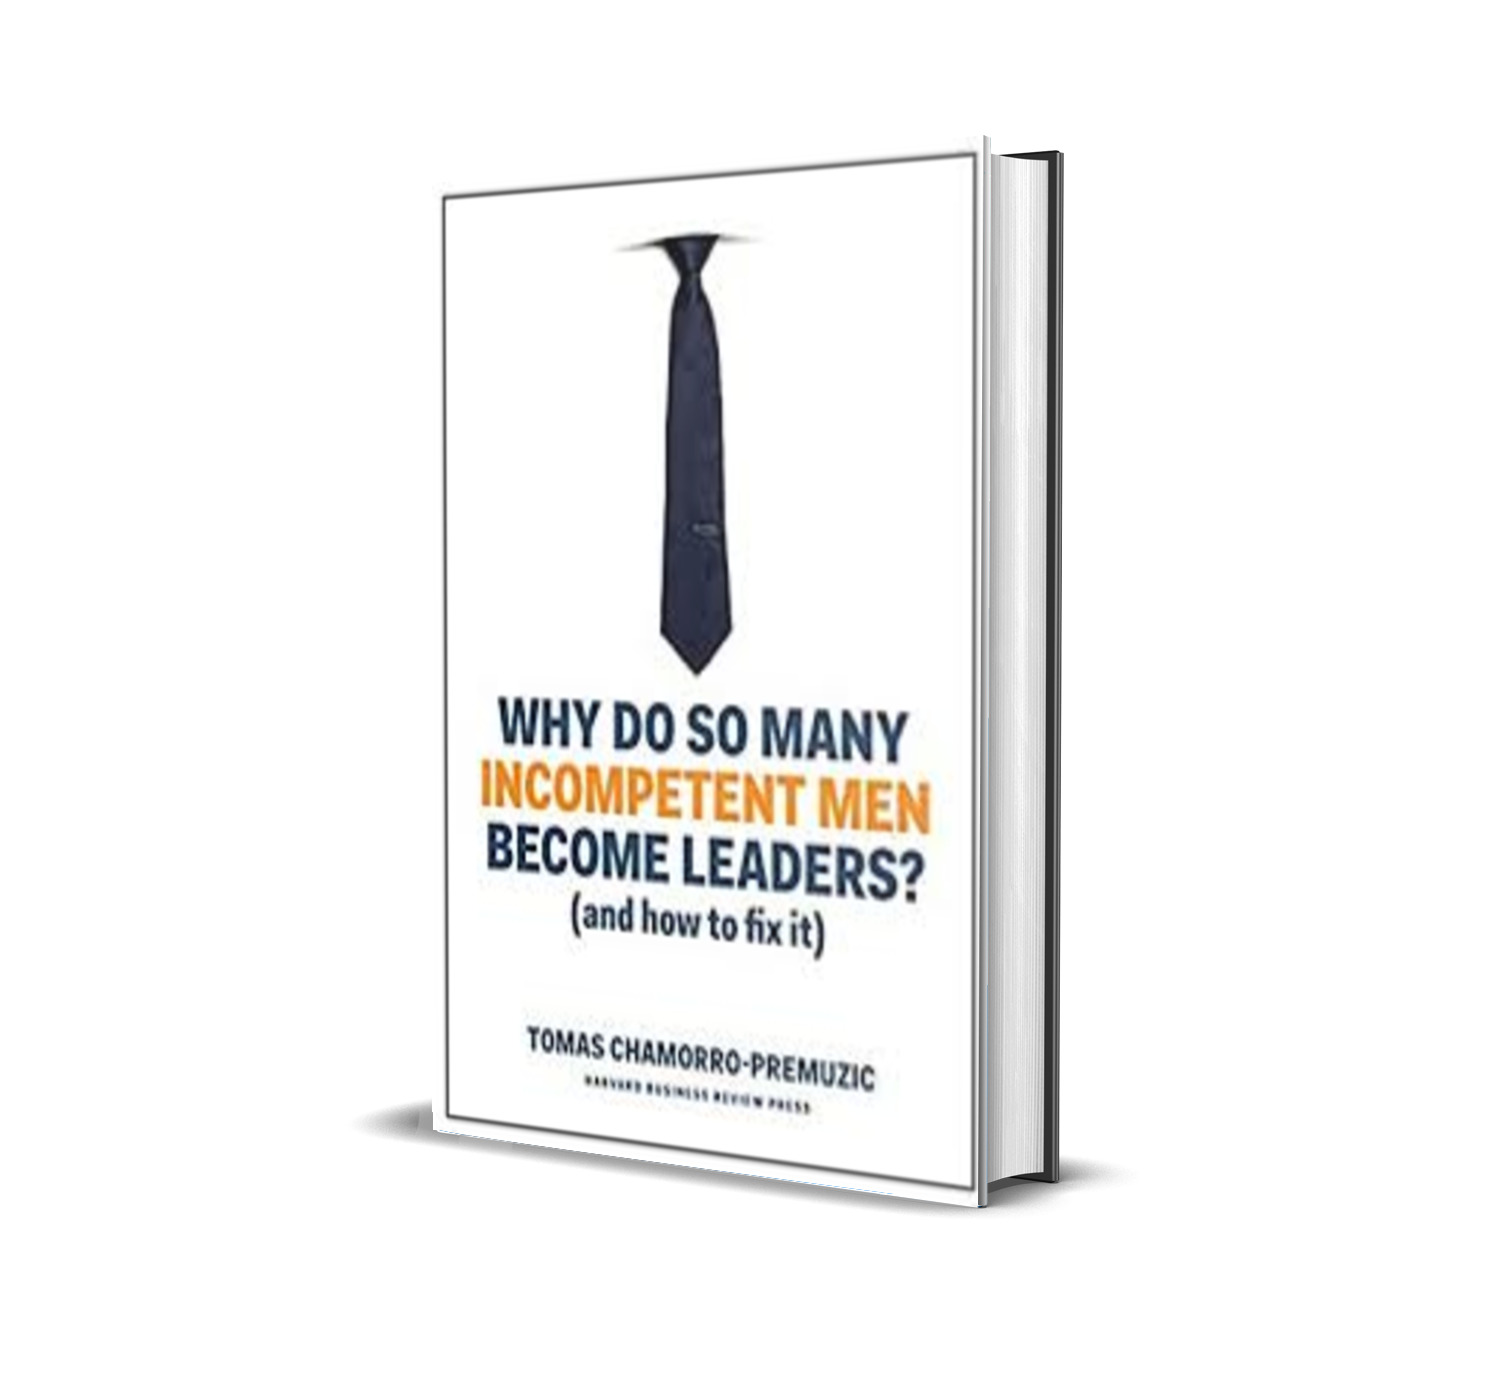 Why do so many incompetent men become leaders? - Tomas Chamorro